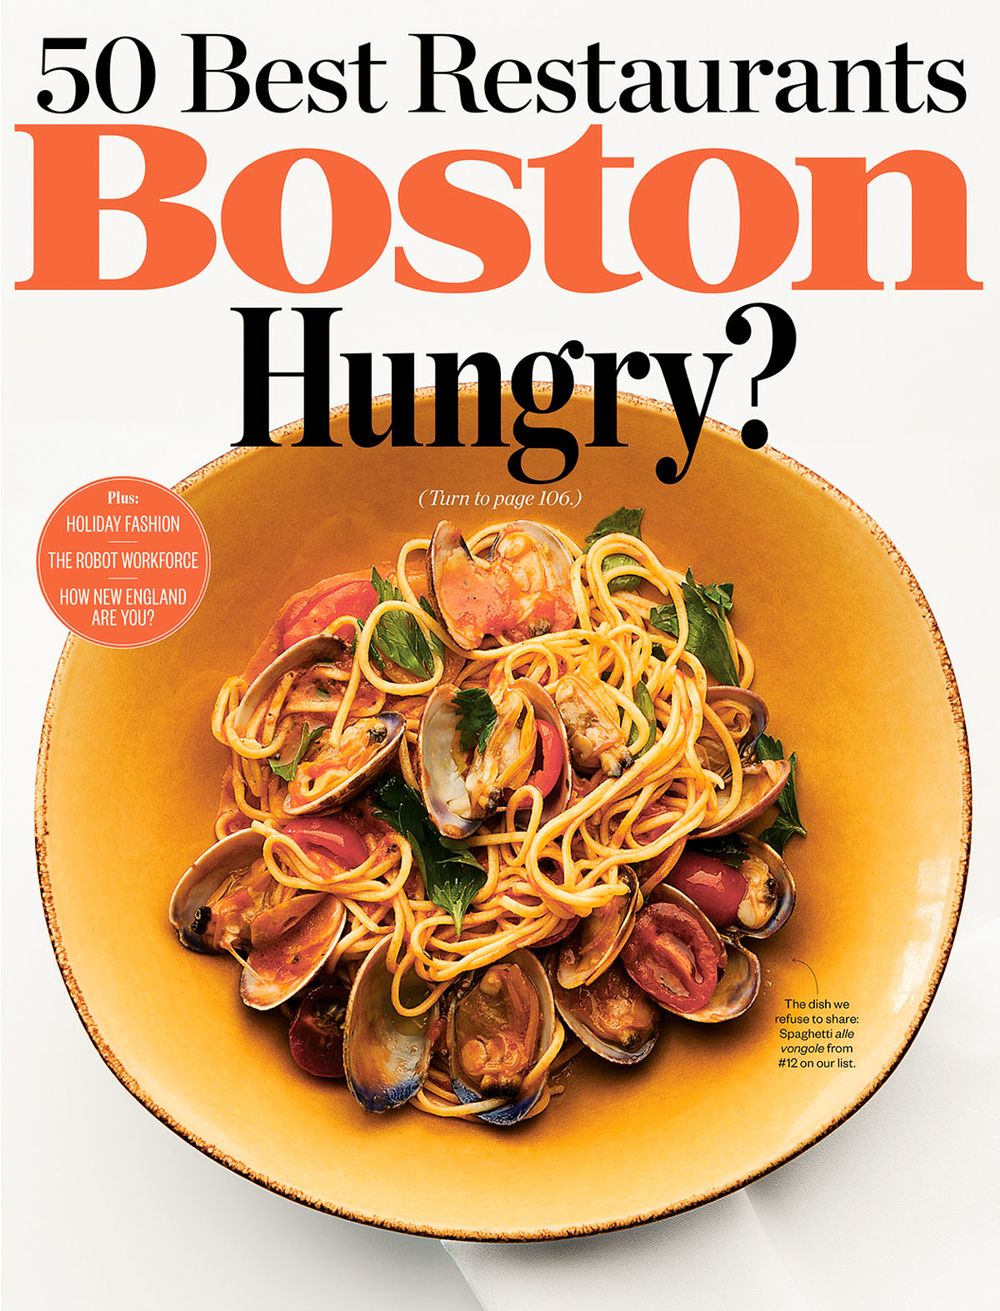 Boston Magazine Cover photographed by Adam DeTour